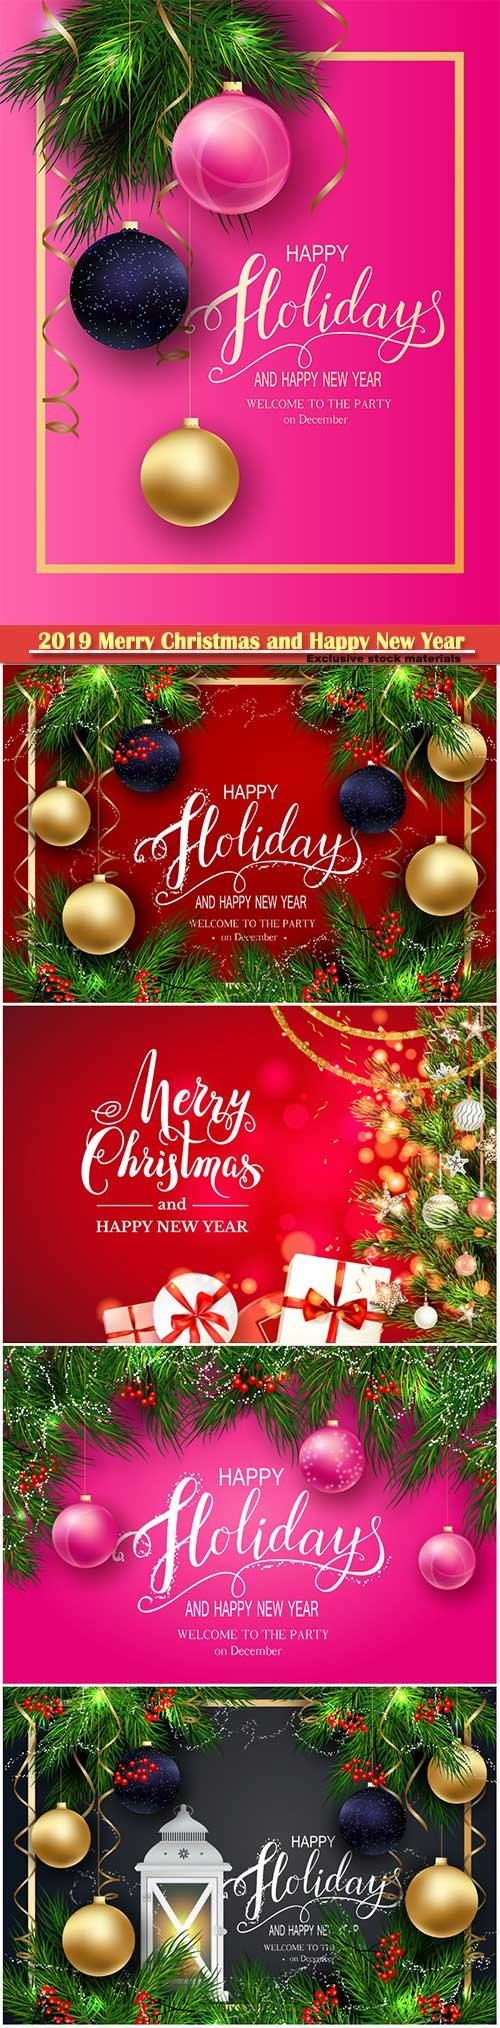 2019 Merry Christmas and Happy New Year vector design # 11